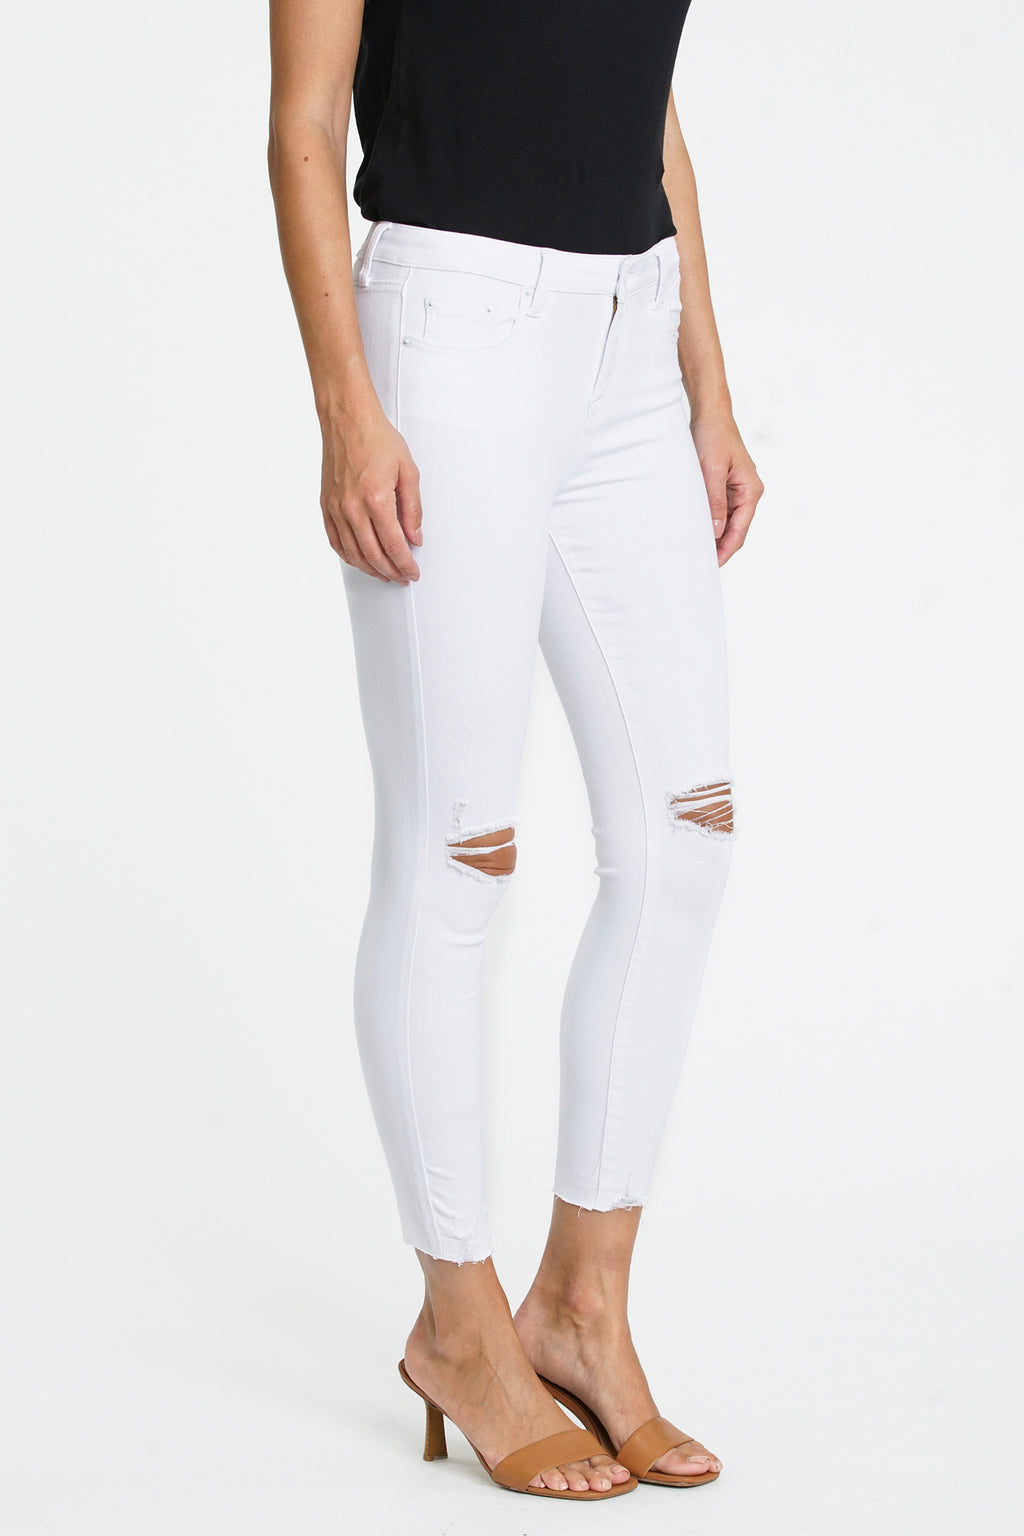 Audrey Mid Rise Skinny Crop - Wrecked Pearl